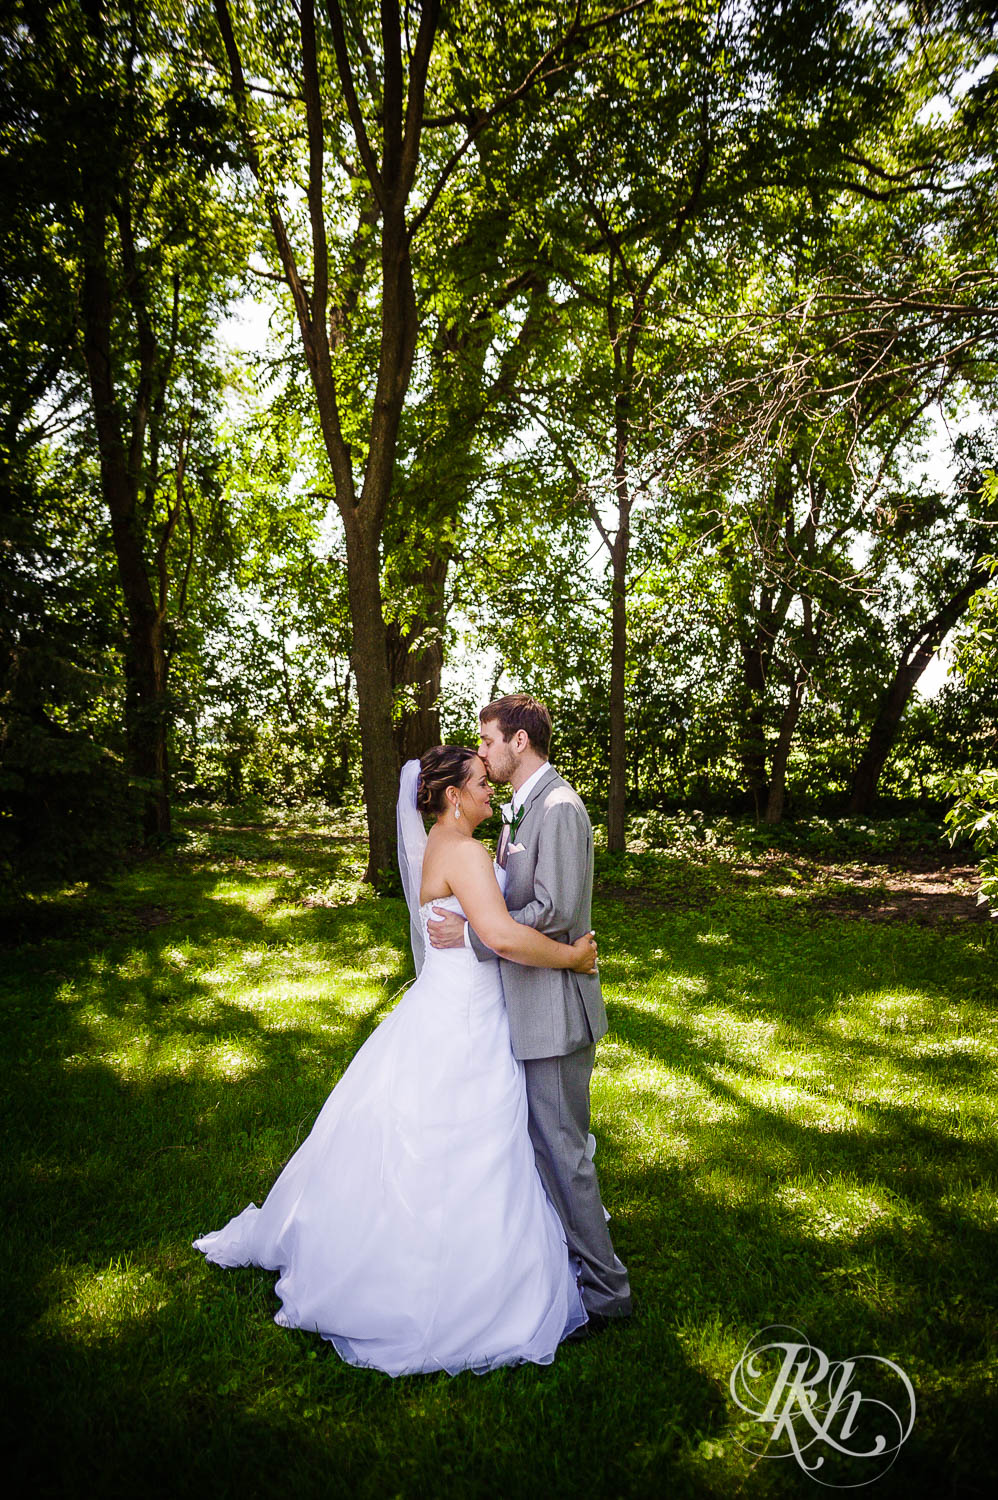 Katie & Alan - Minnesota Wedding Photography - Next Chapter Winery - RKH Images - Blog  (32 of 48).jpg